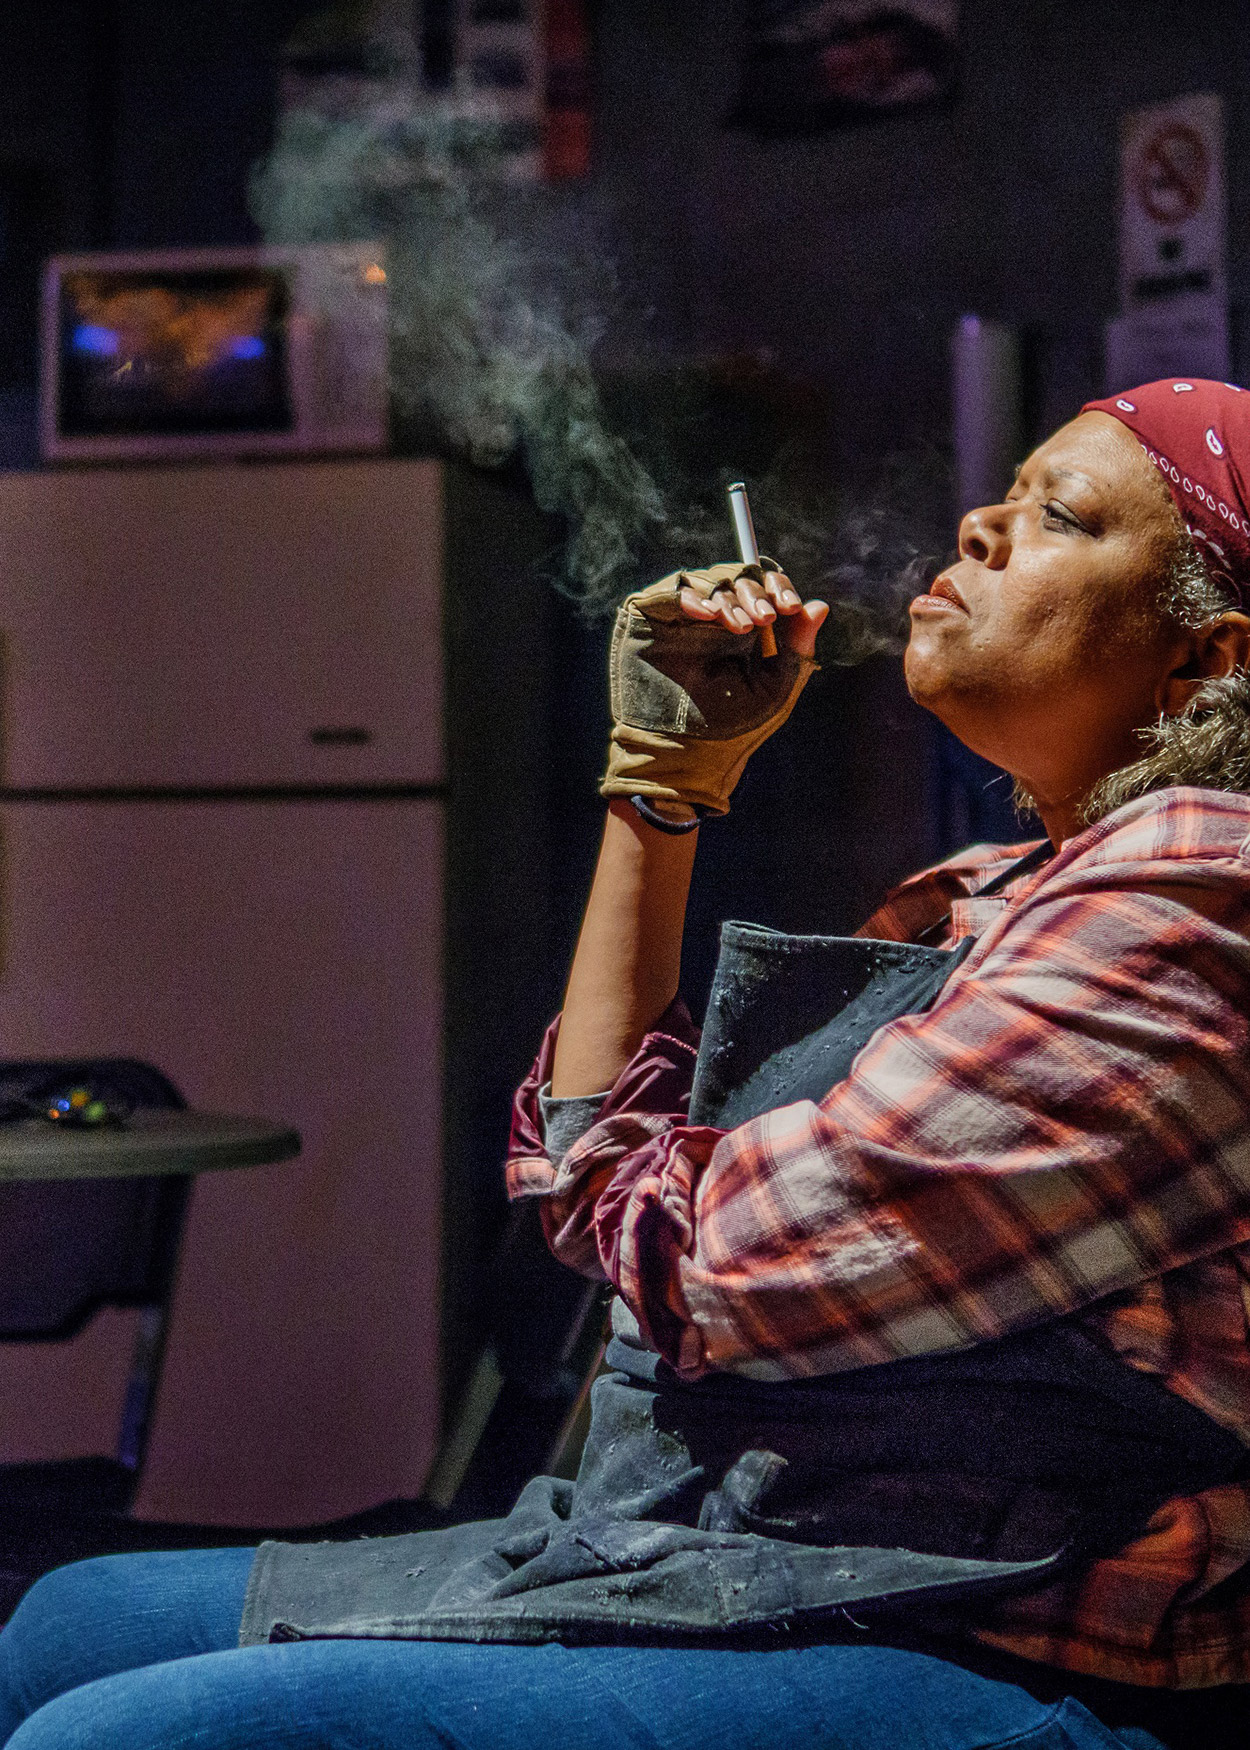 Production Photo from Skeleton Crew (2017). A black woman sits in a dark room smoking a cigarette. She is wearing blue jeans, a gray apron, a red plaid shirt and a red bandana over her hair.